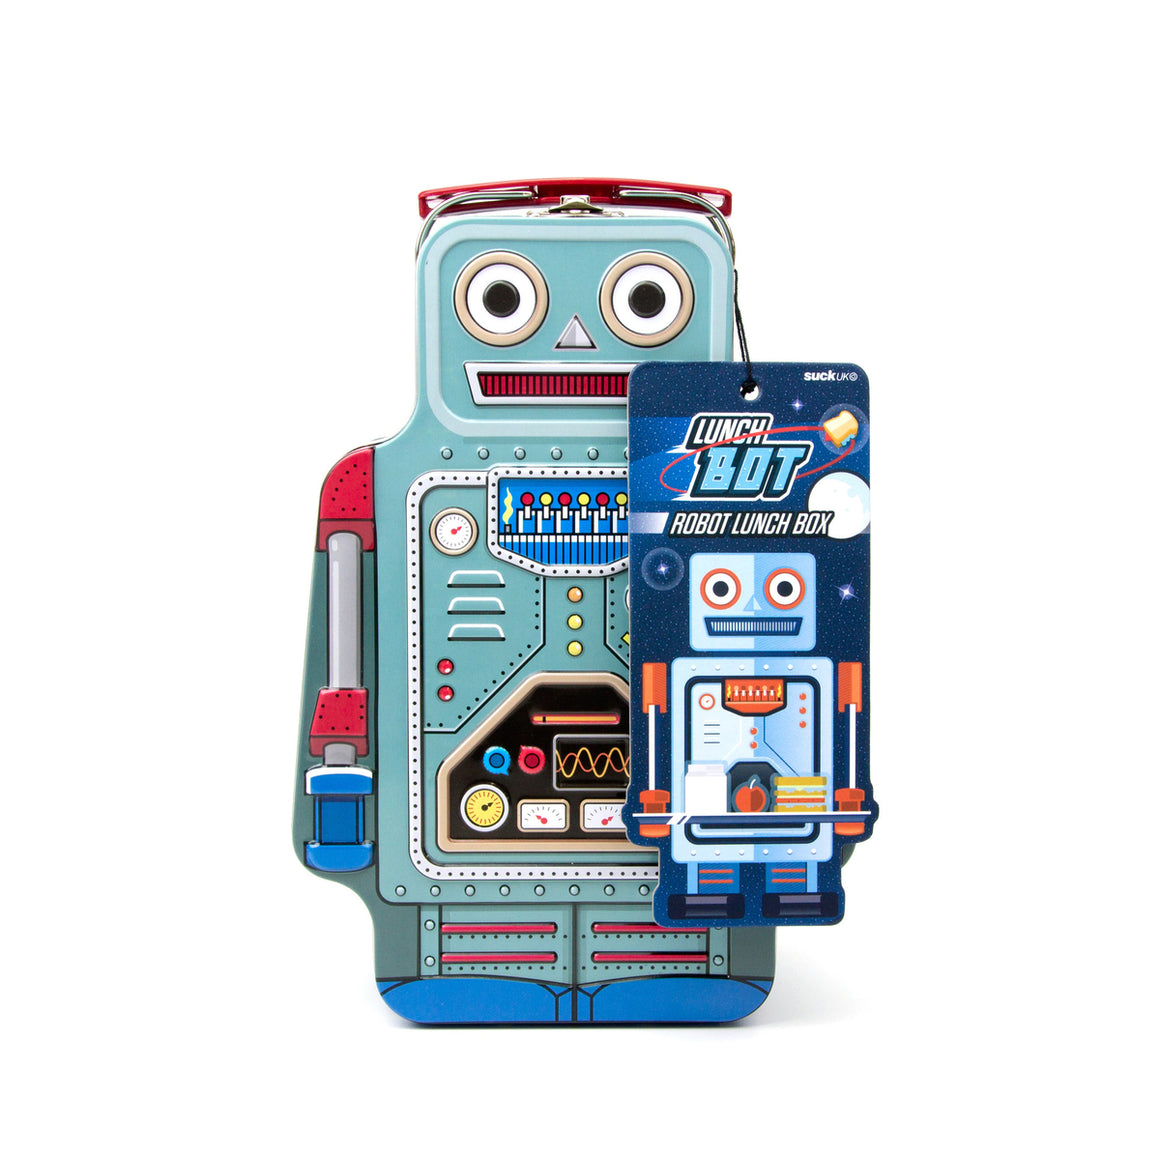 A tin lunchbox in the shape of a retro robot.